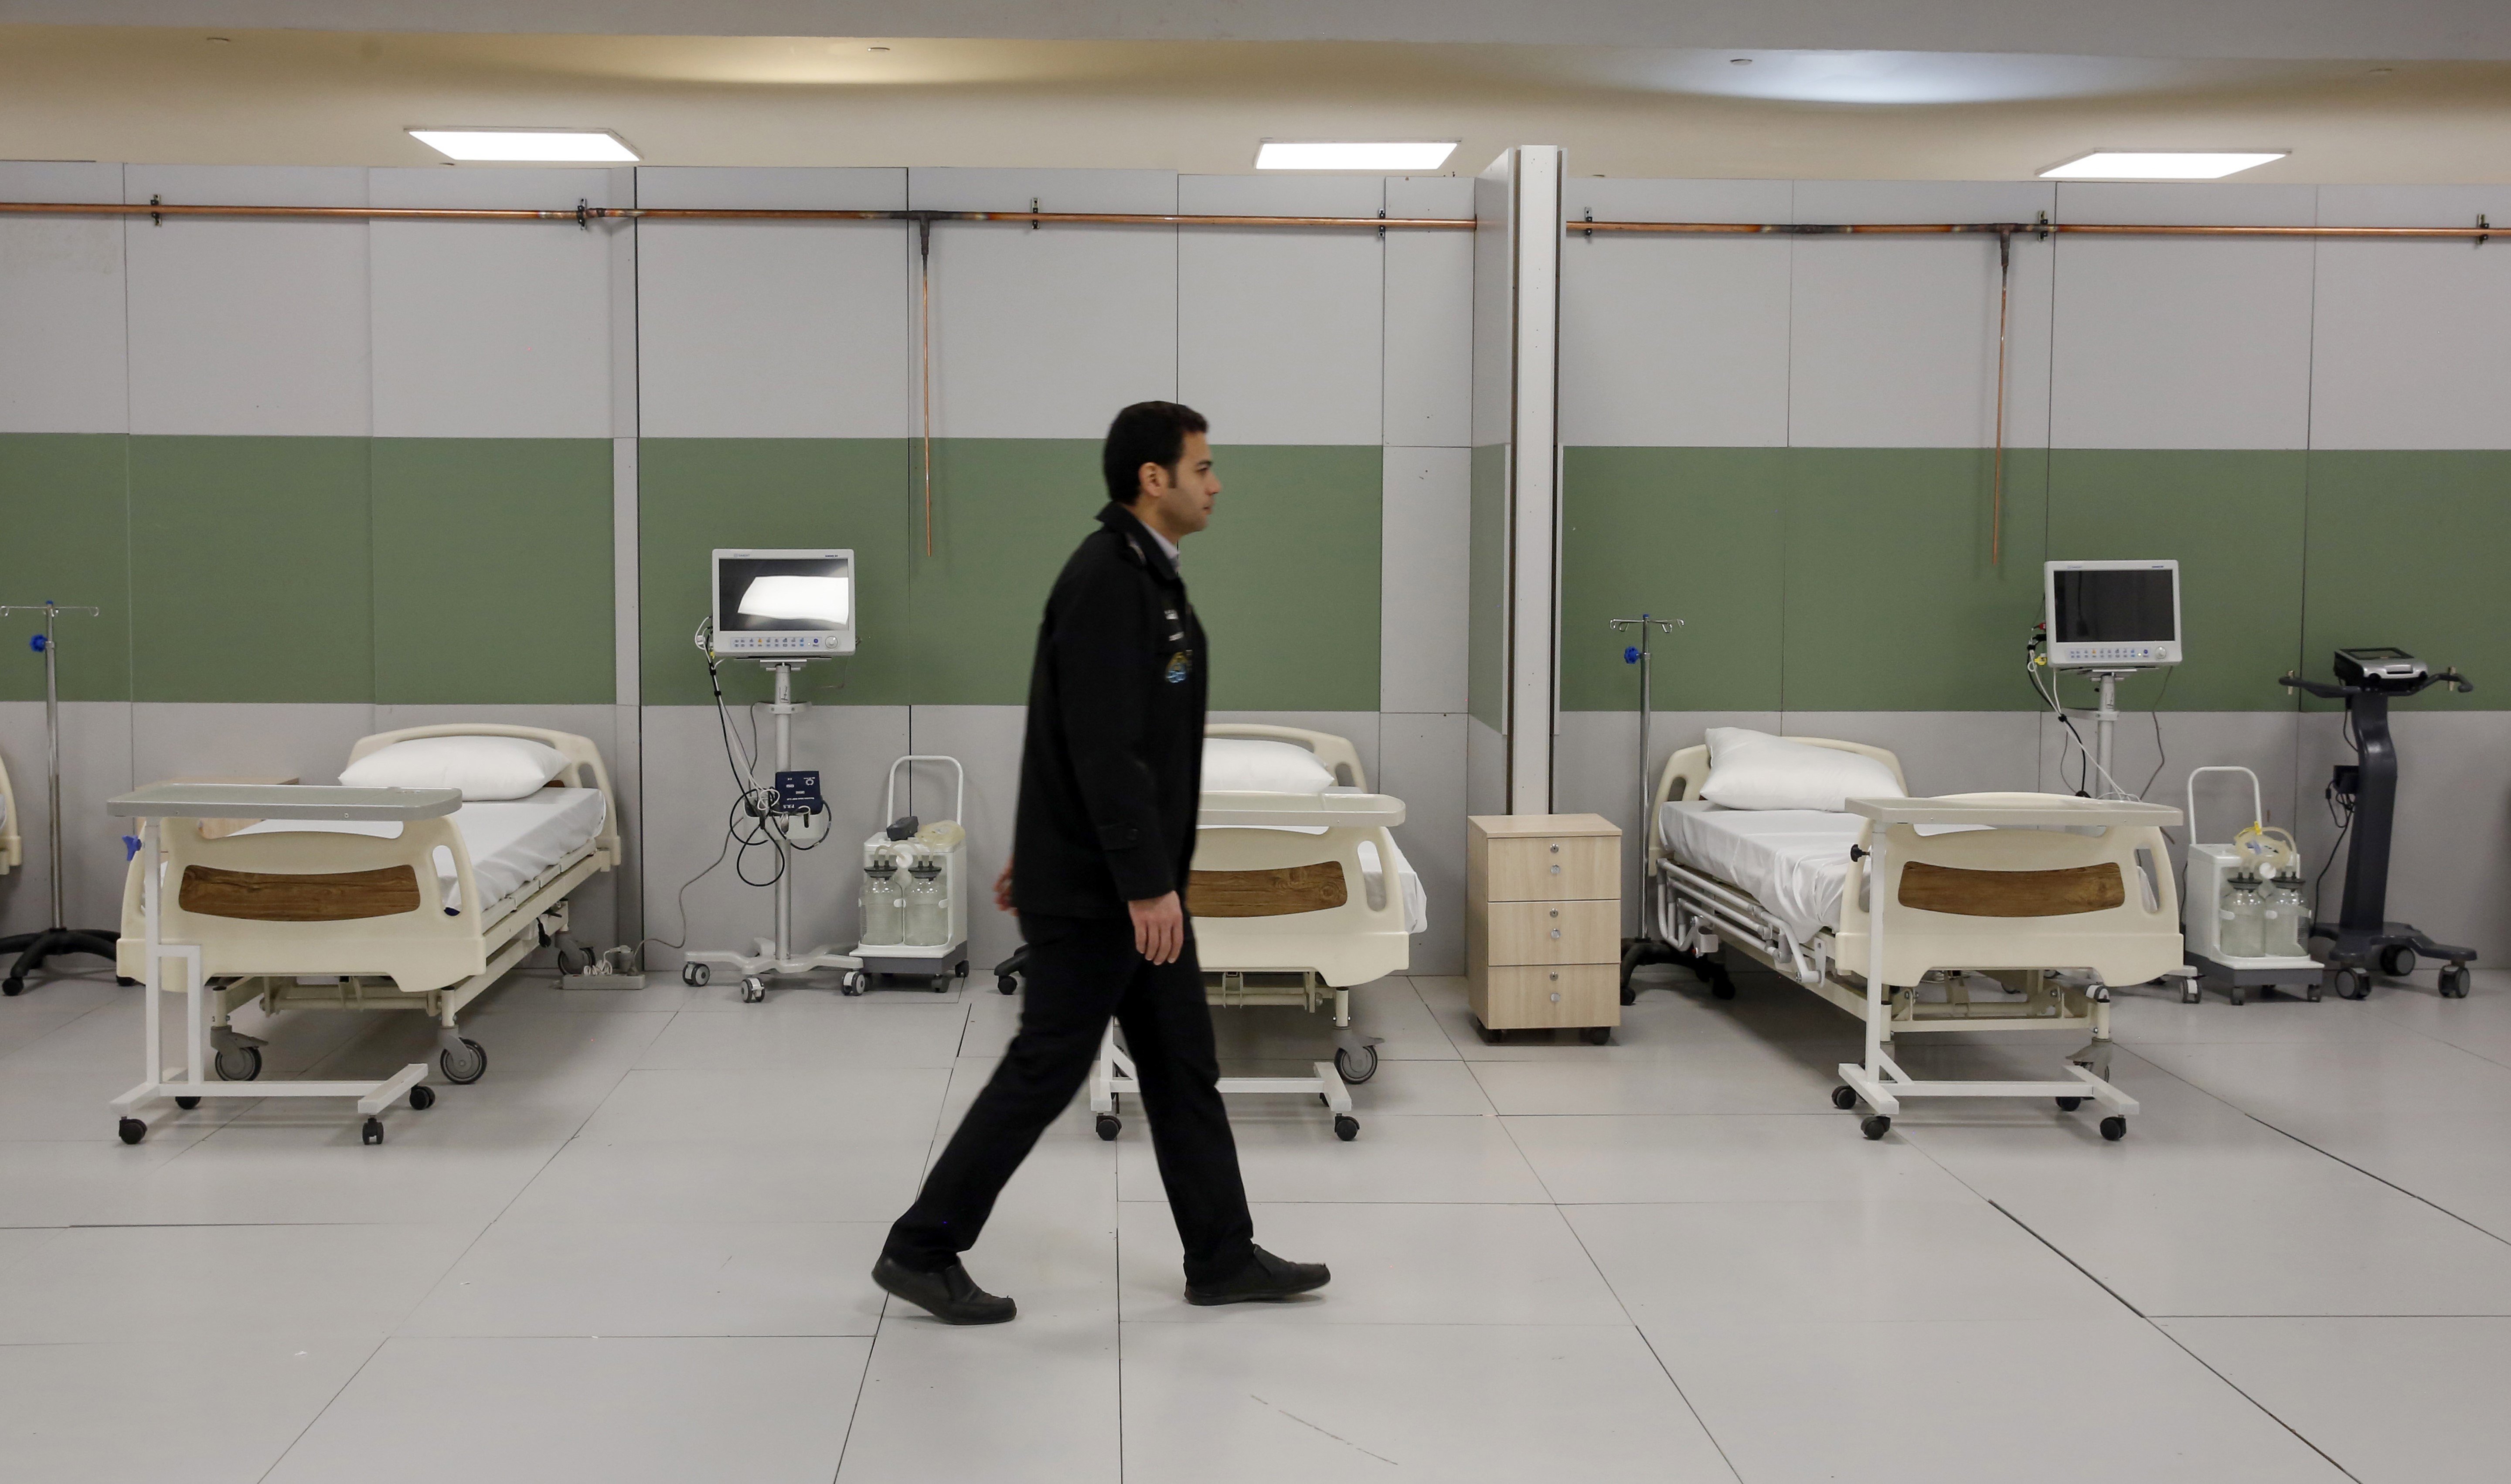 An Iranian worker walks past beds at a makeshift hospital inside the Iran Mall, northwest of Tehran, on 21 March (AFP)